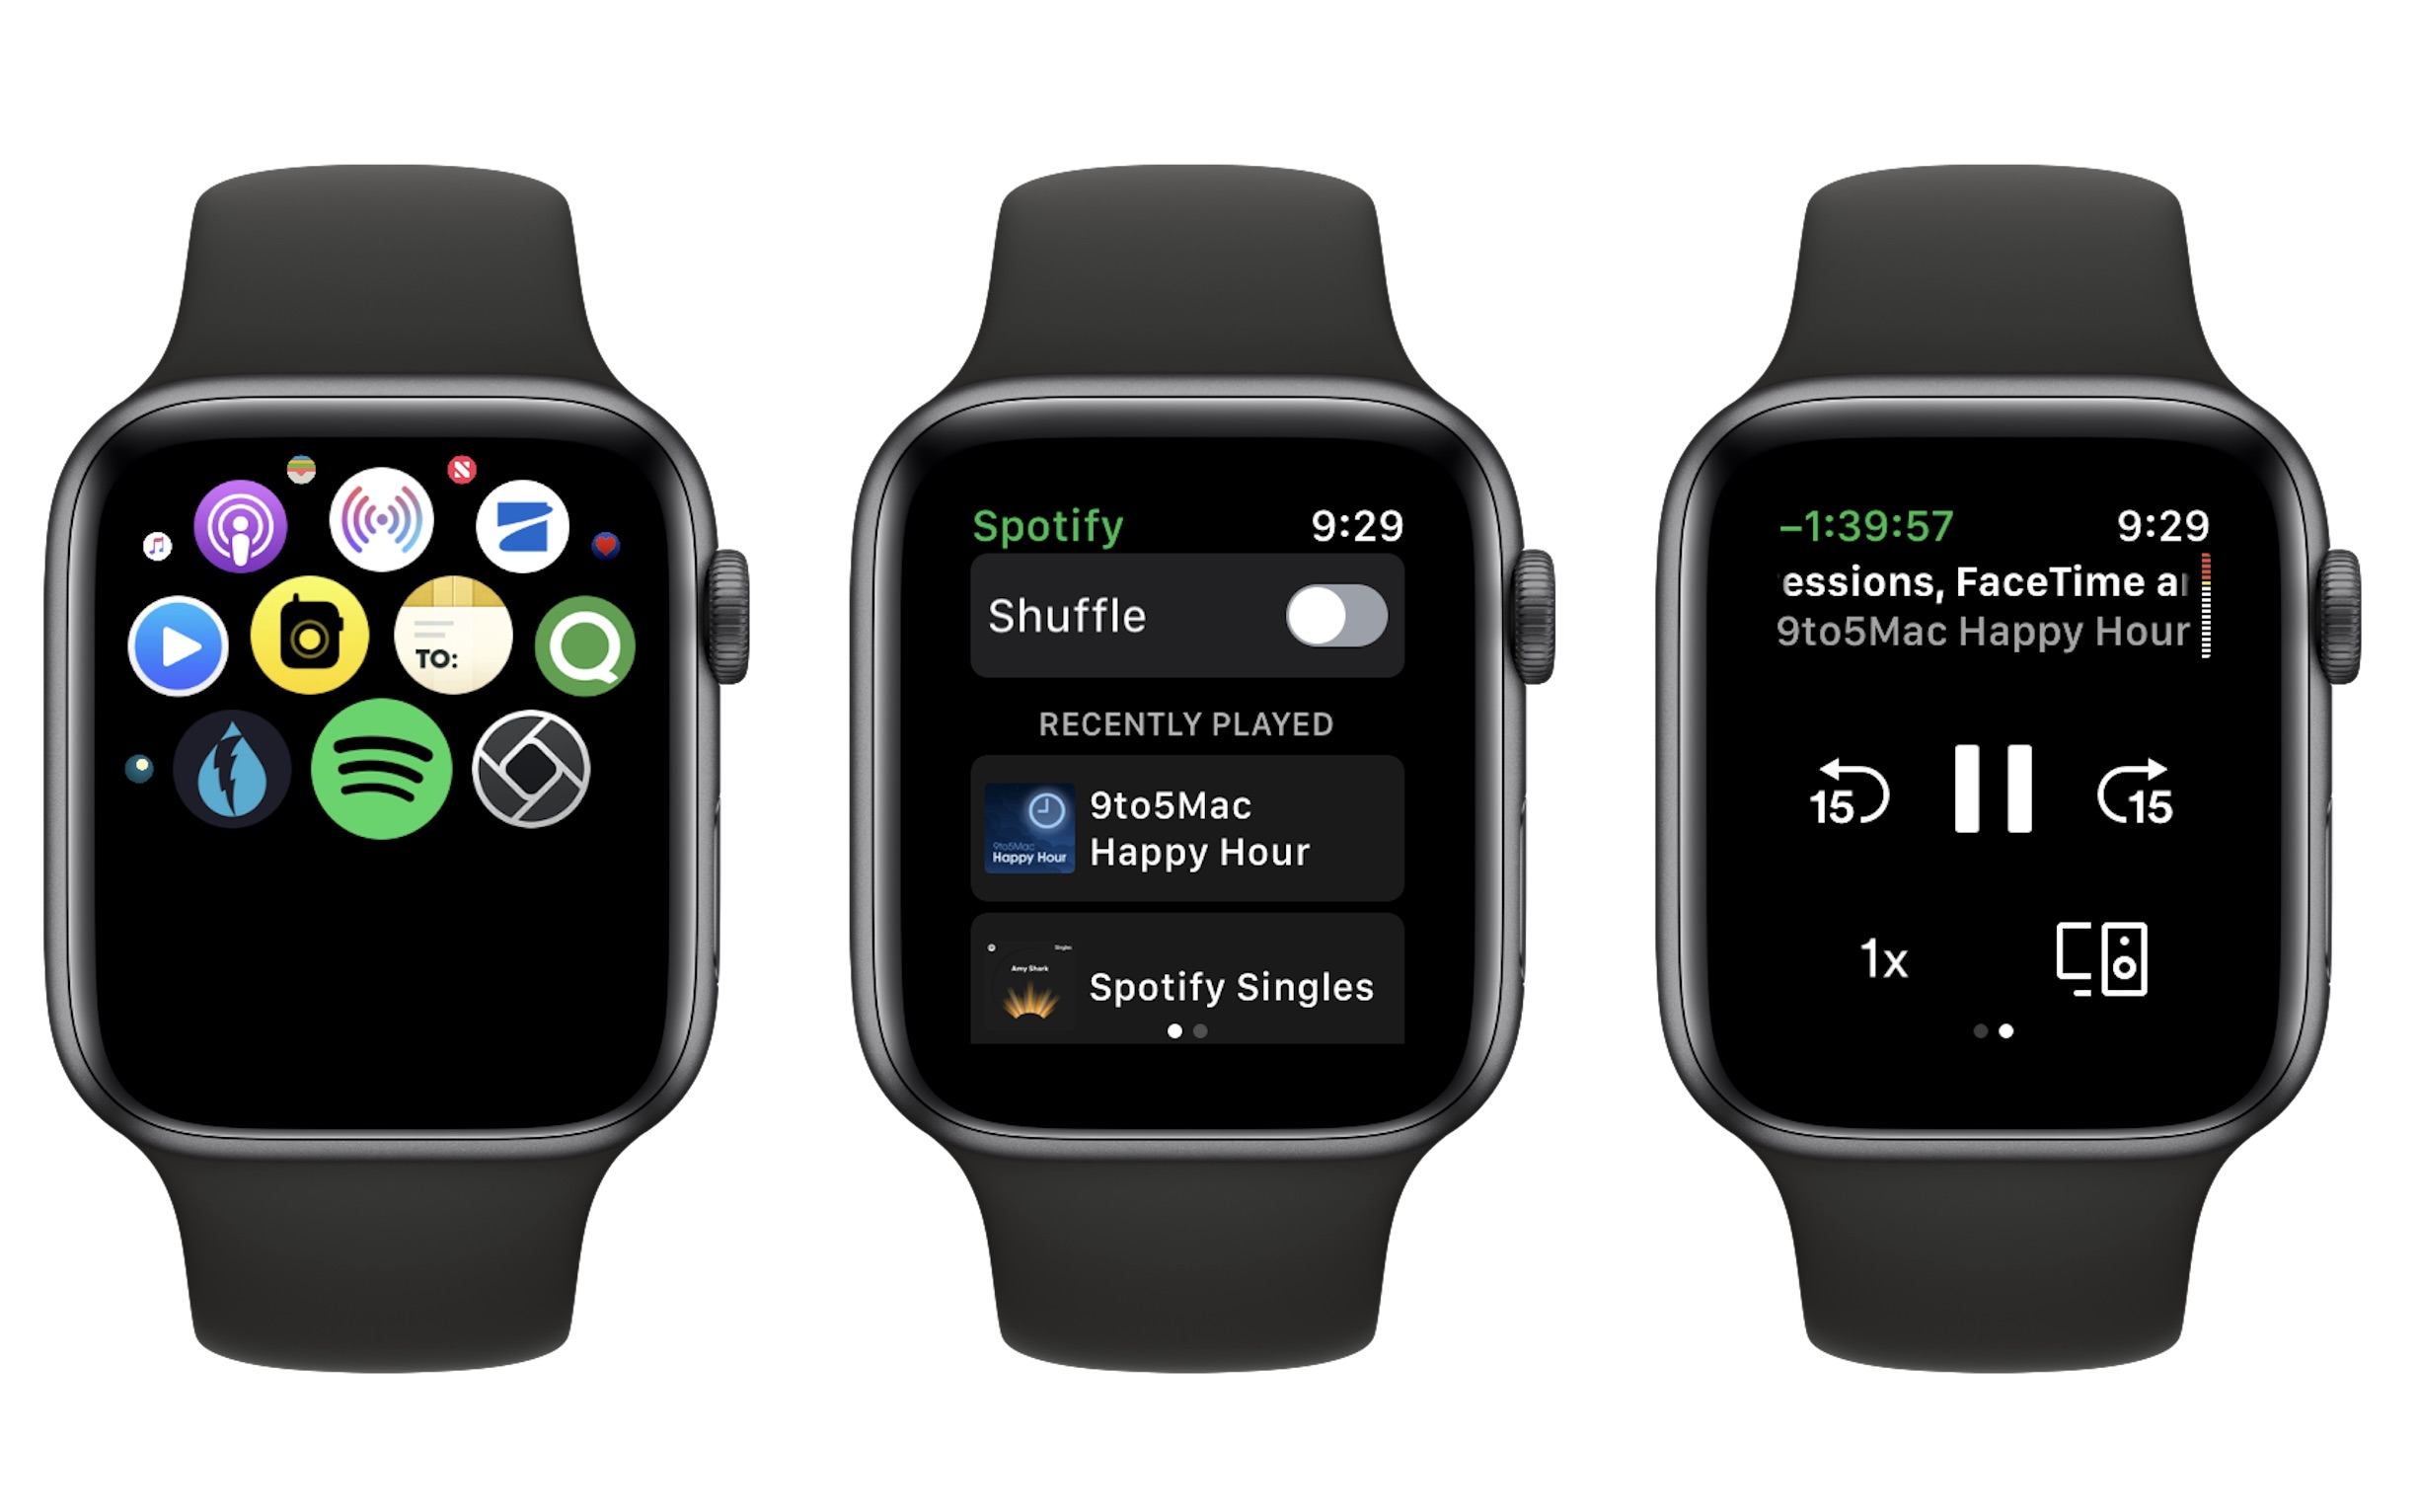 Spotify for Apple Watch - Spotify releases 'first version' of its Apple Watch app with limited features